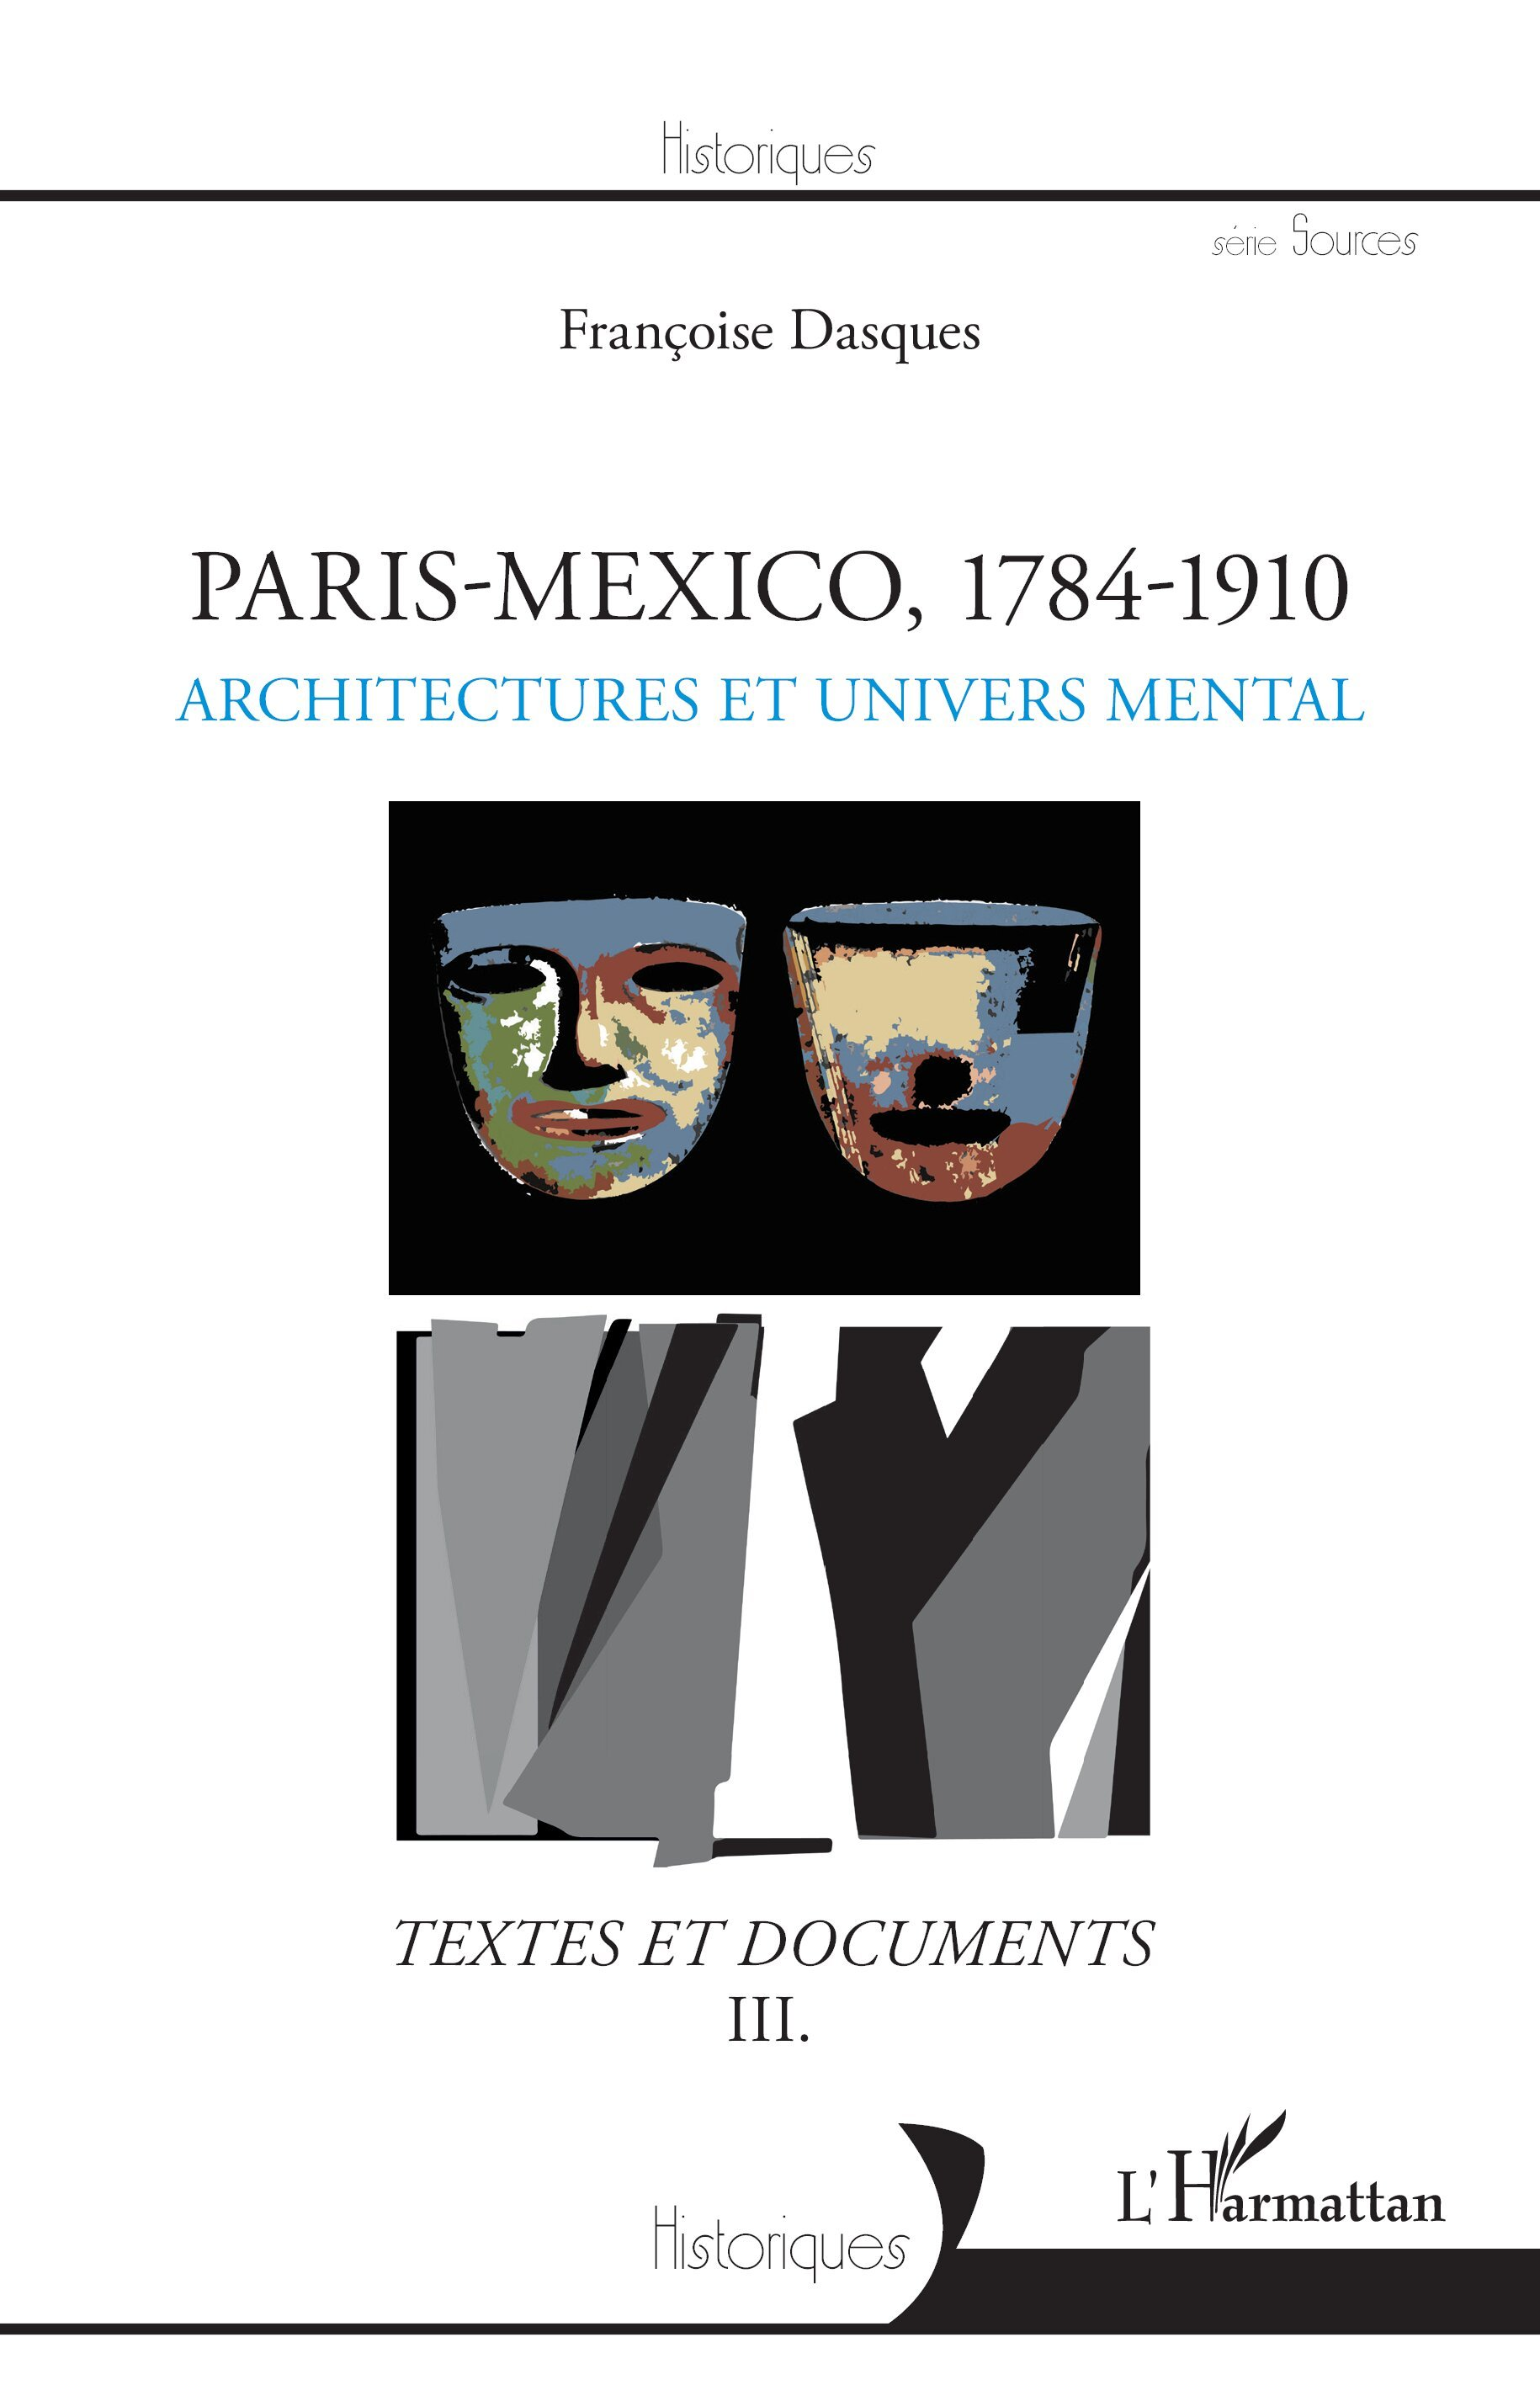 PARIS - MEXICO, 1784-1910 - ARCHITECTURES ET UNIVERS MENTAL - TEXTES ET DOCUMENTS III